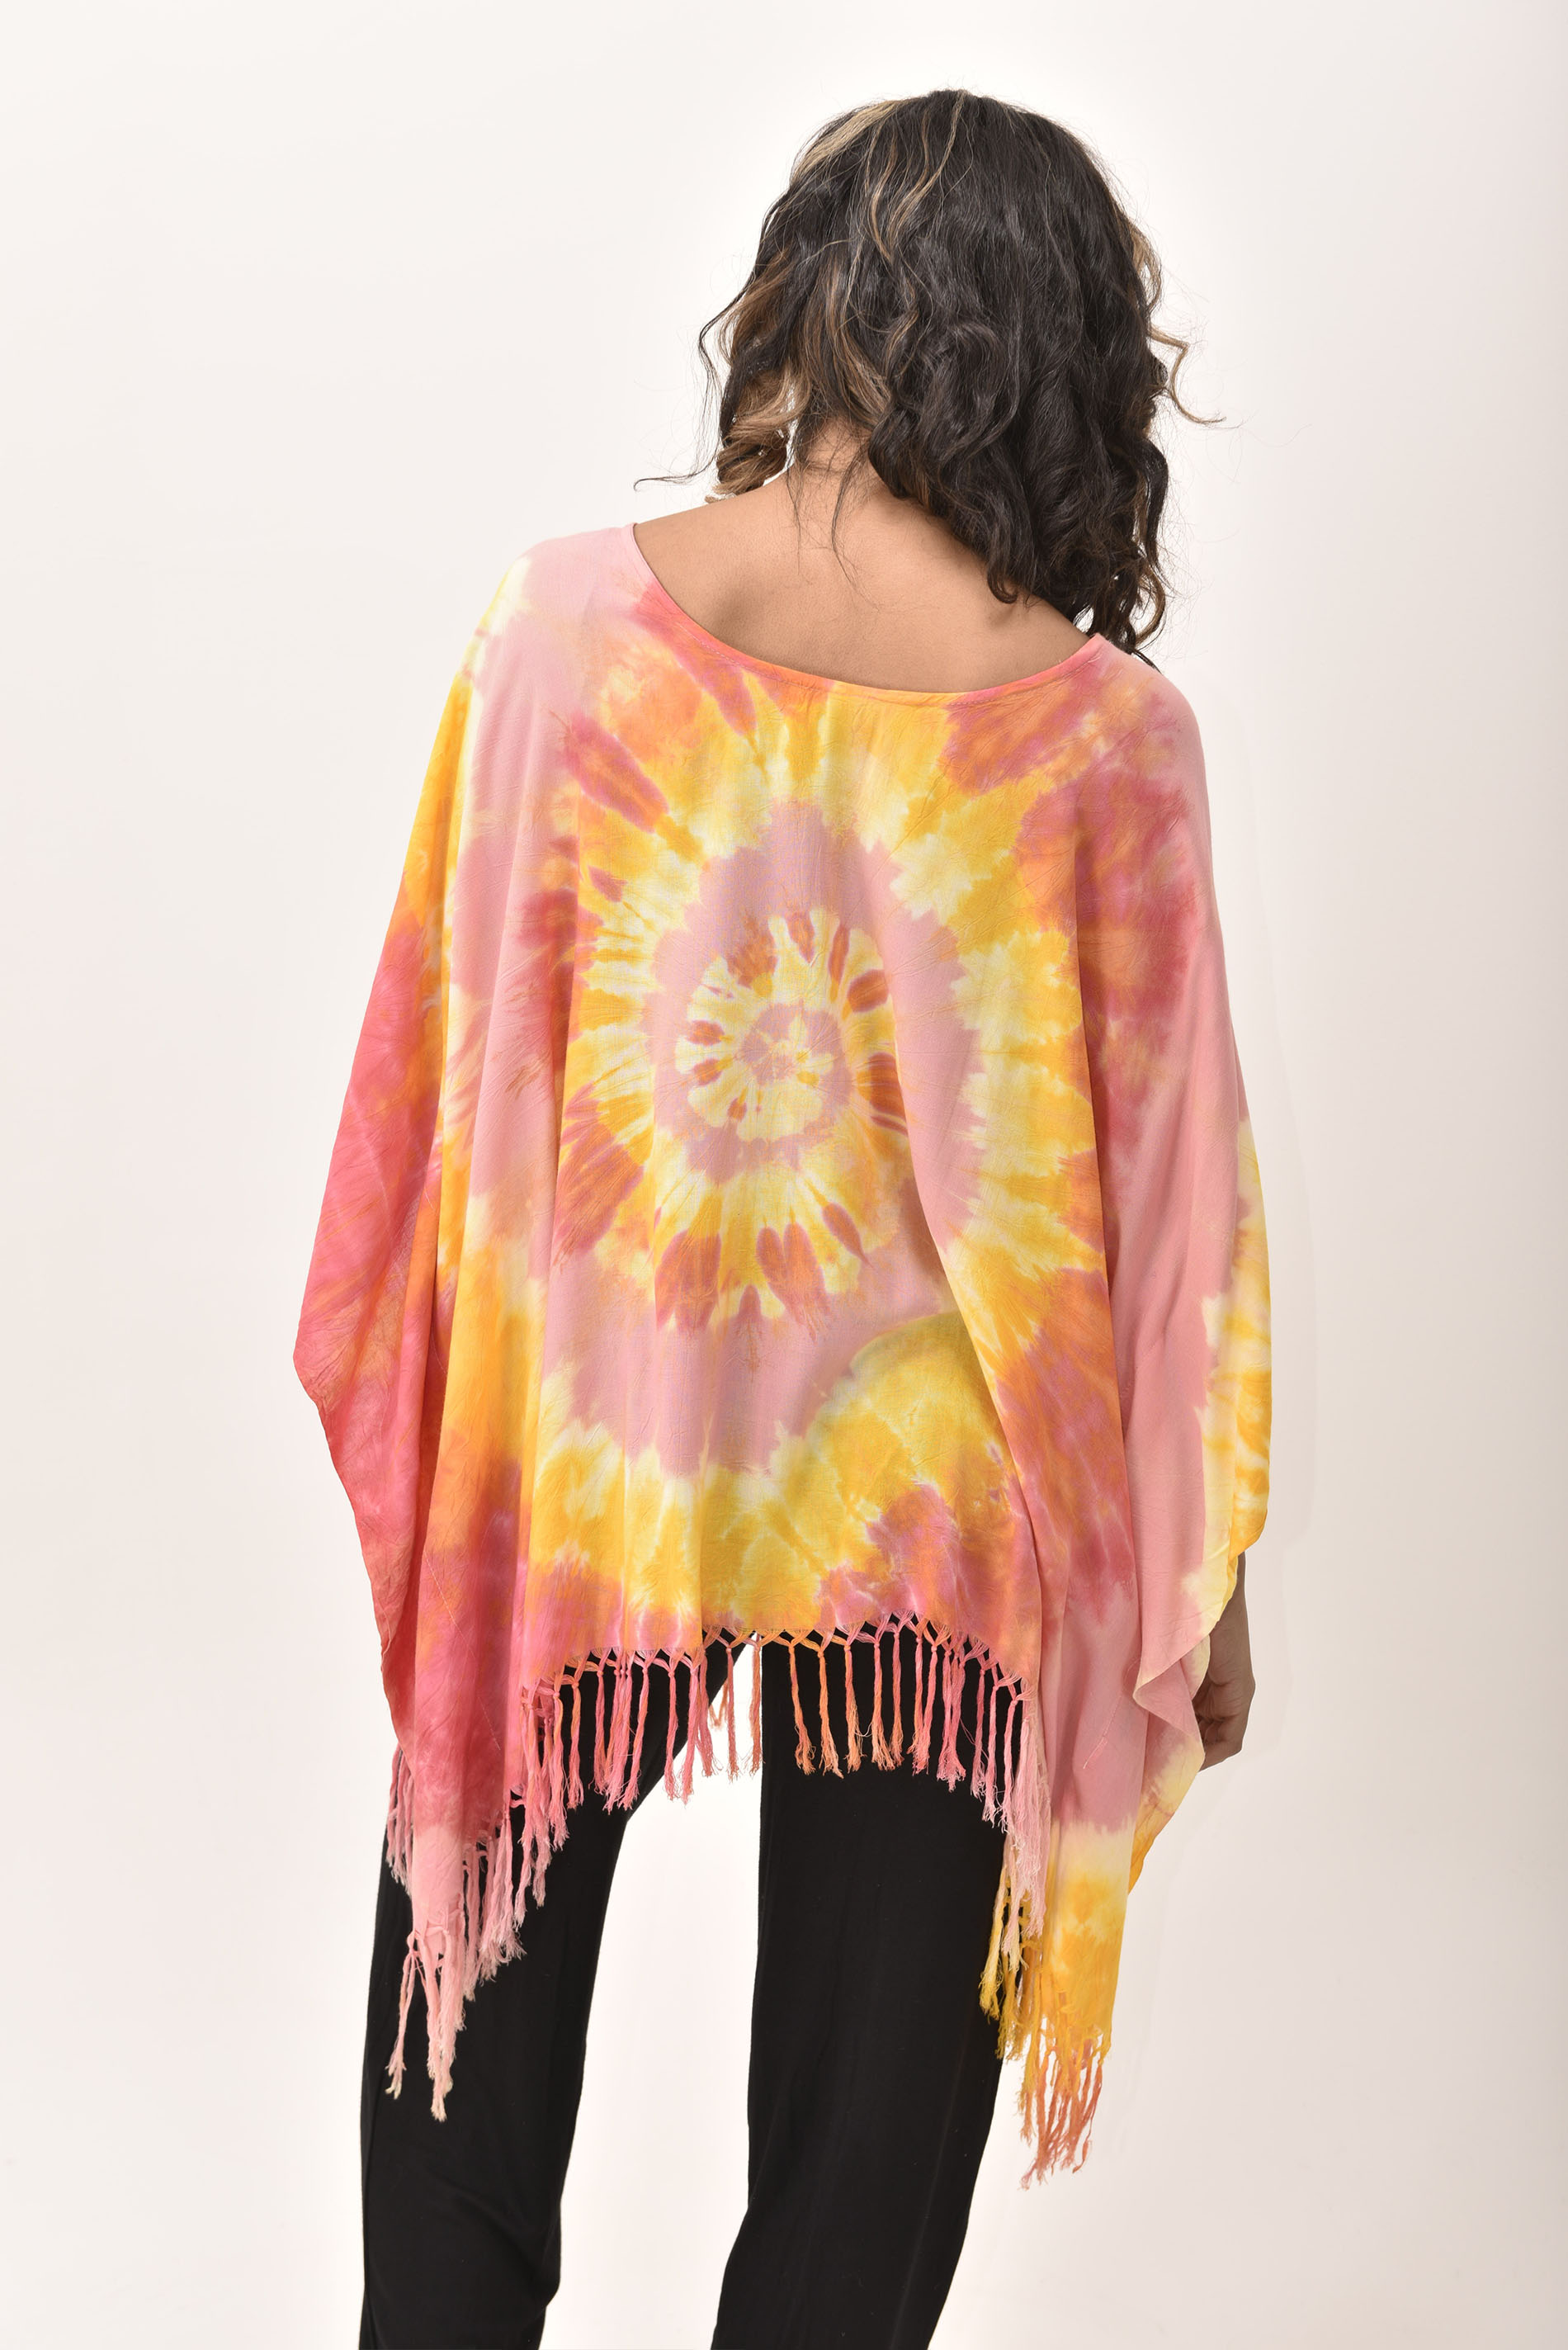 Fringed Poncho Tunic Hand Painted Tie Dye, Orange Yellow